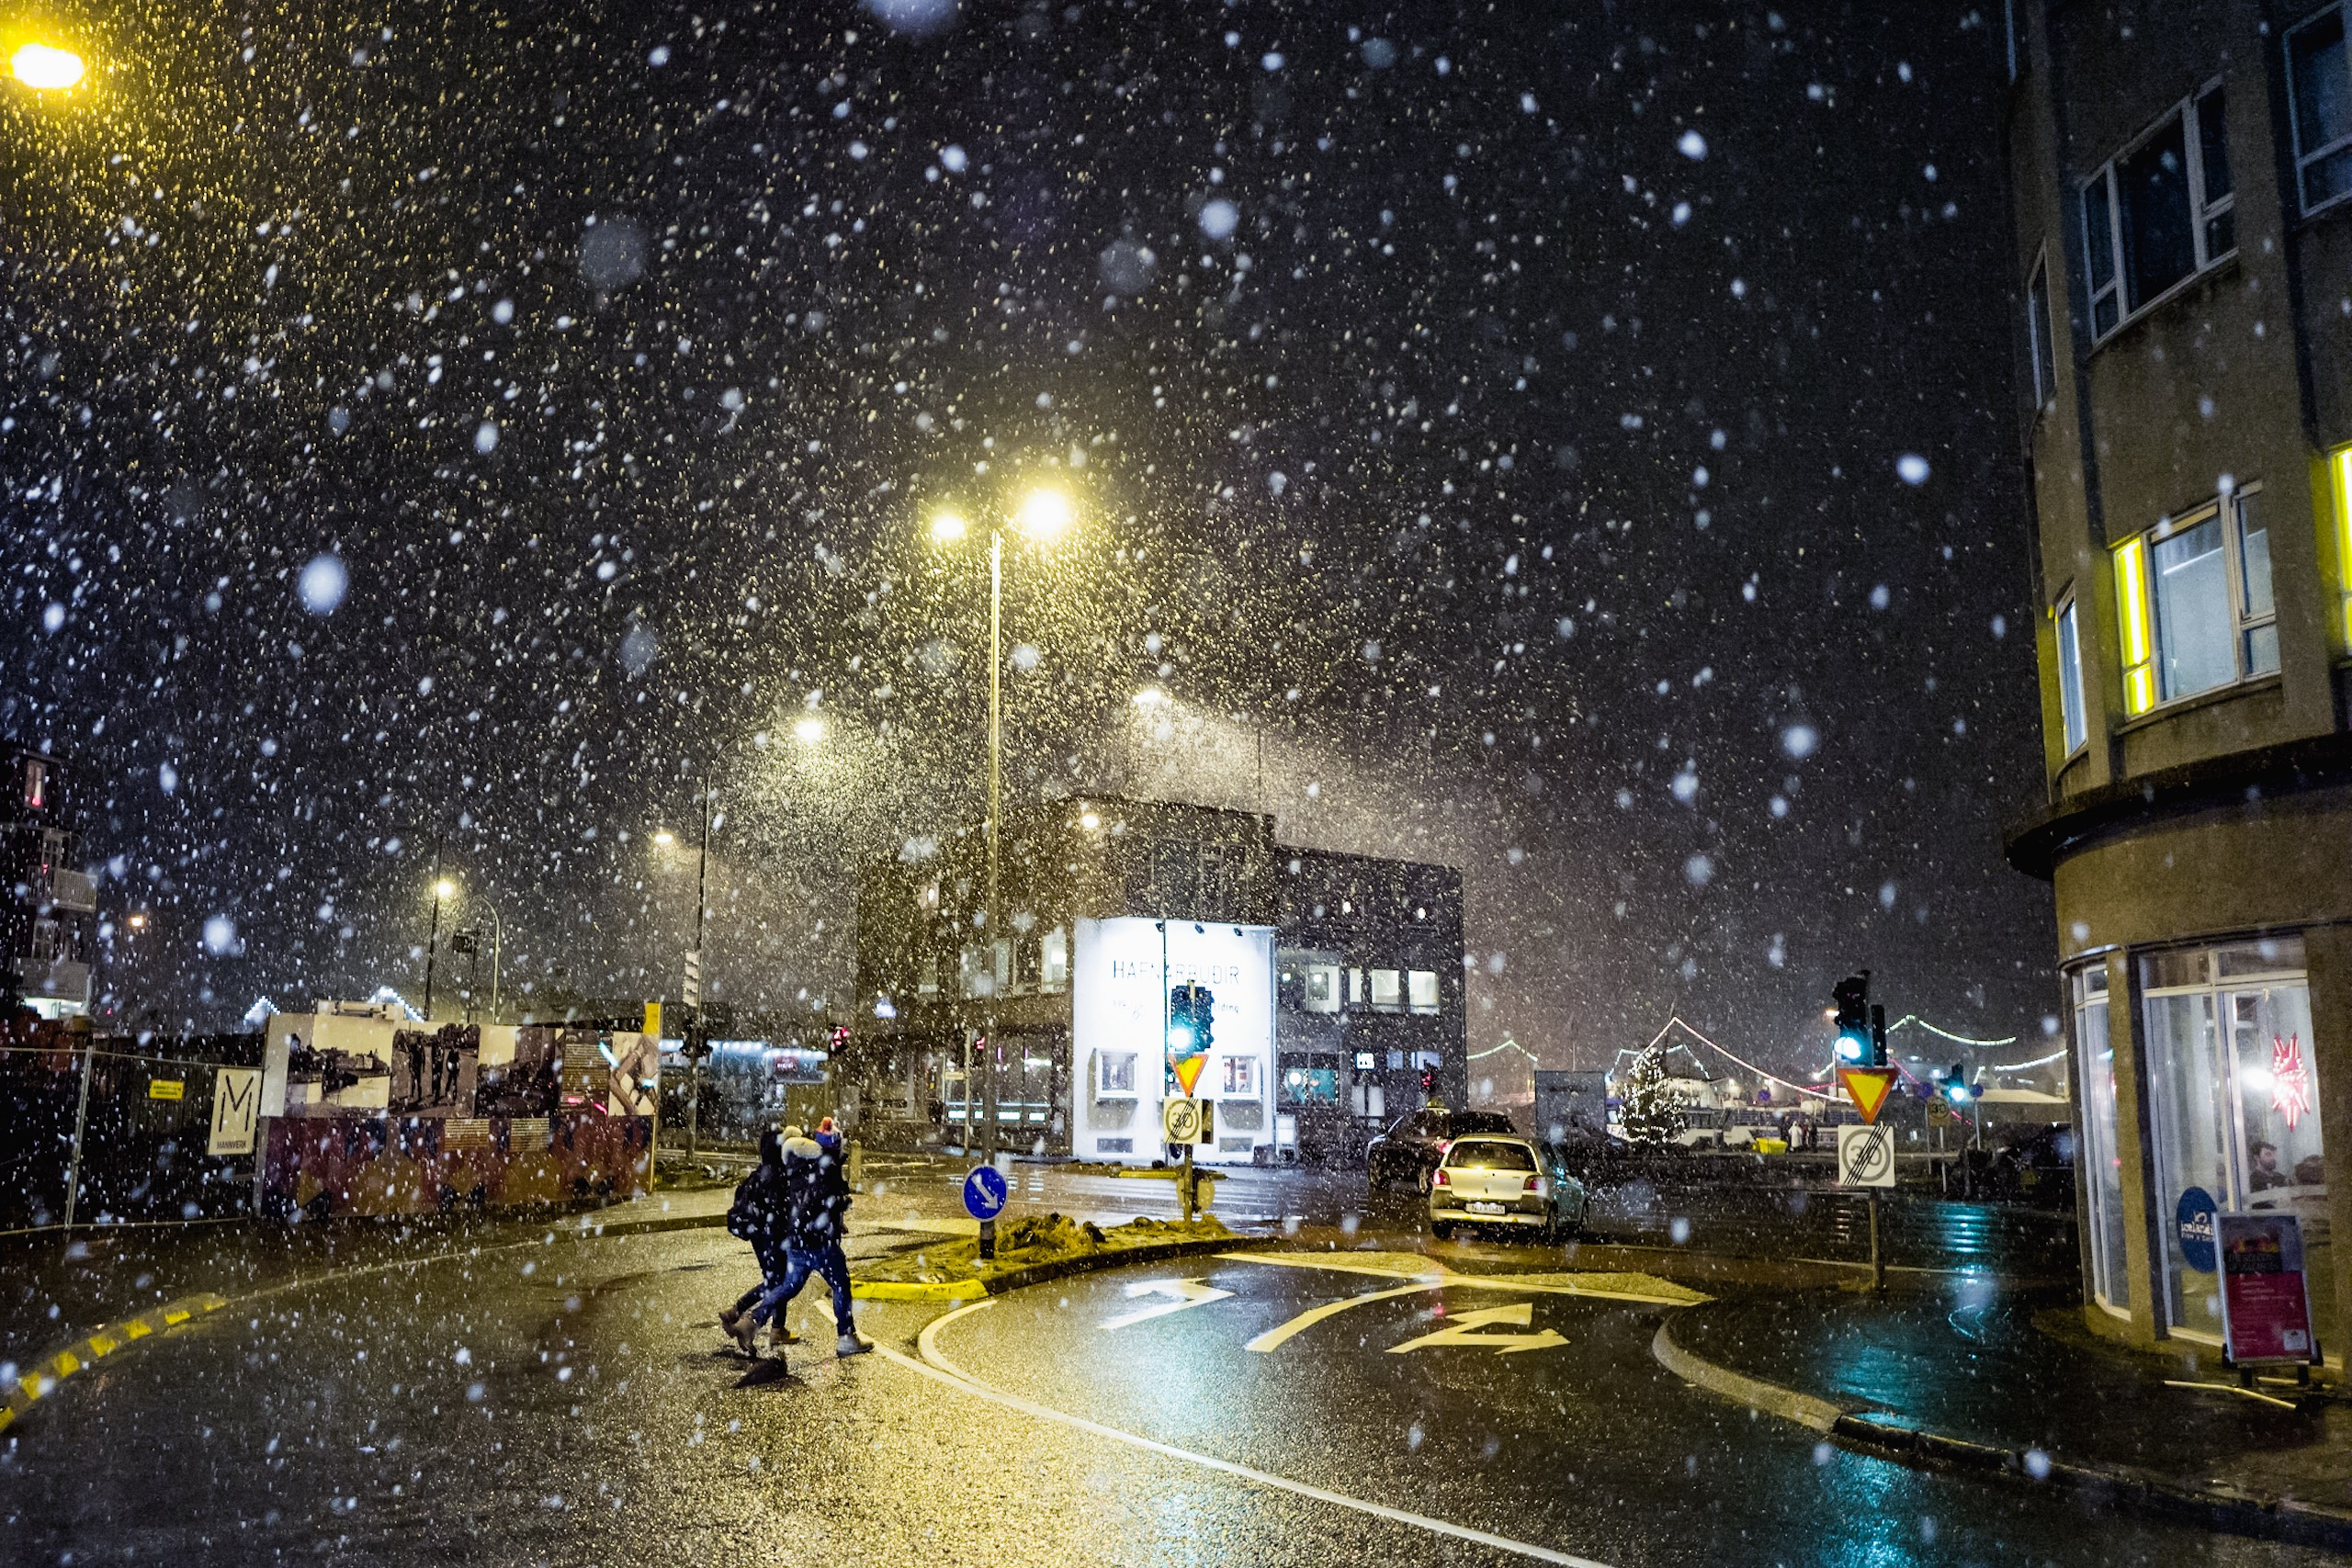 Snowing in Iceland